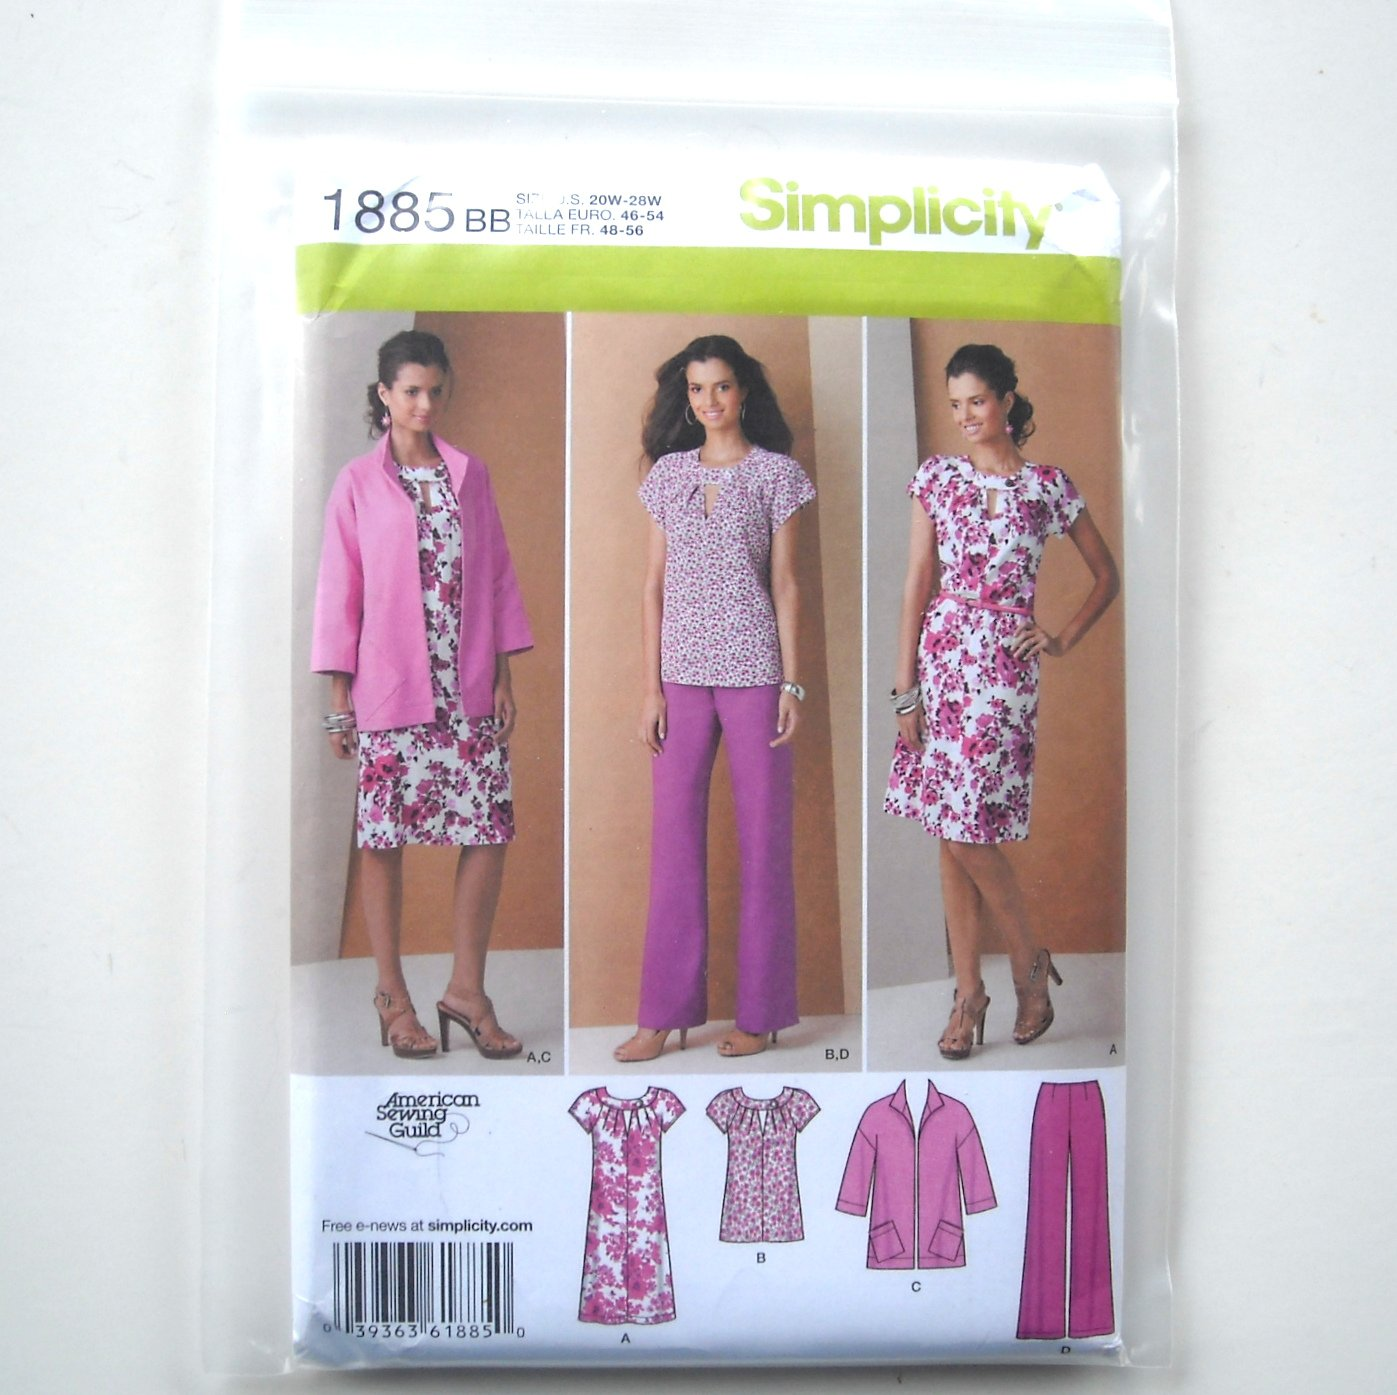 Misses Womens Pullover Dress Tunic Plus Size 20W - 28W American Sewing Guild Simplicity Pattern 1885